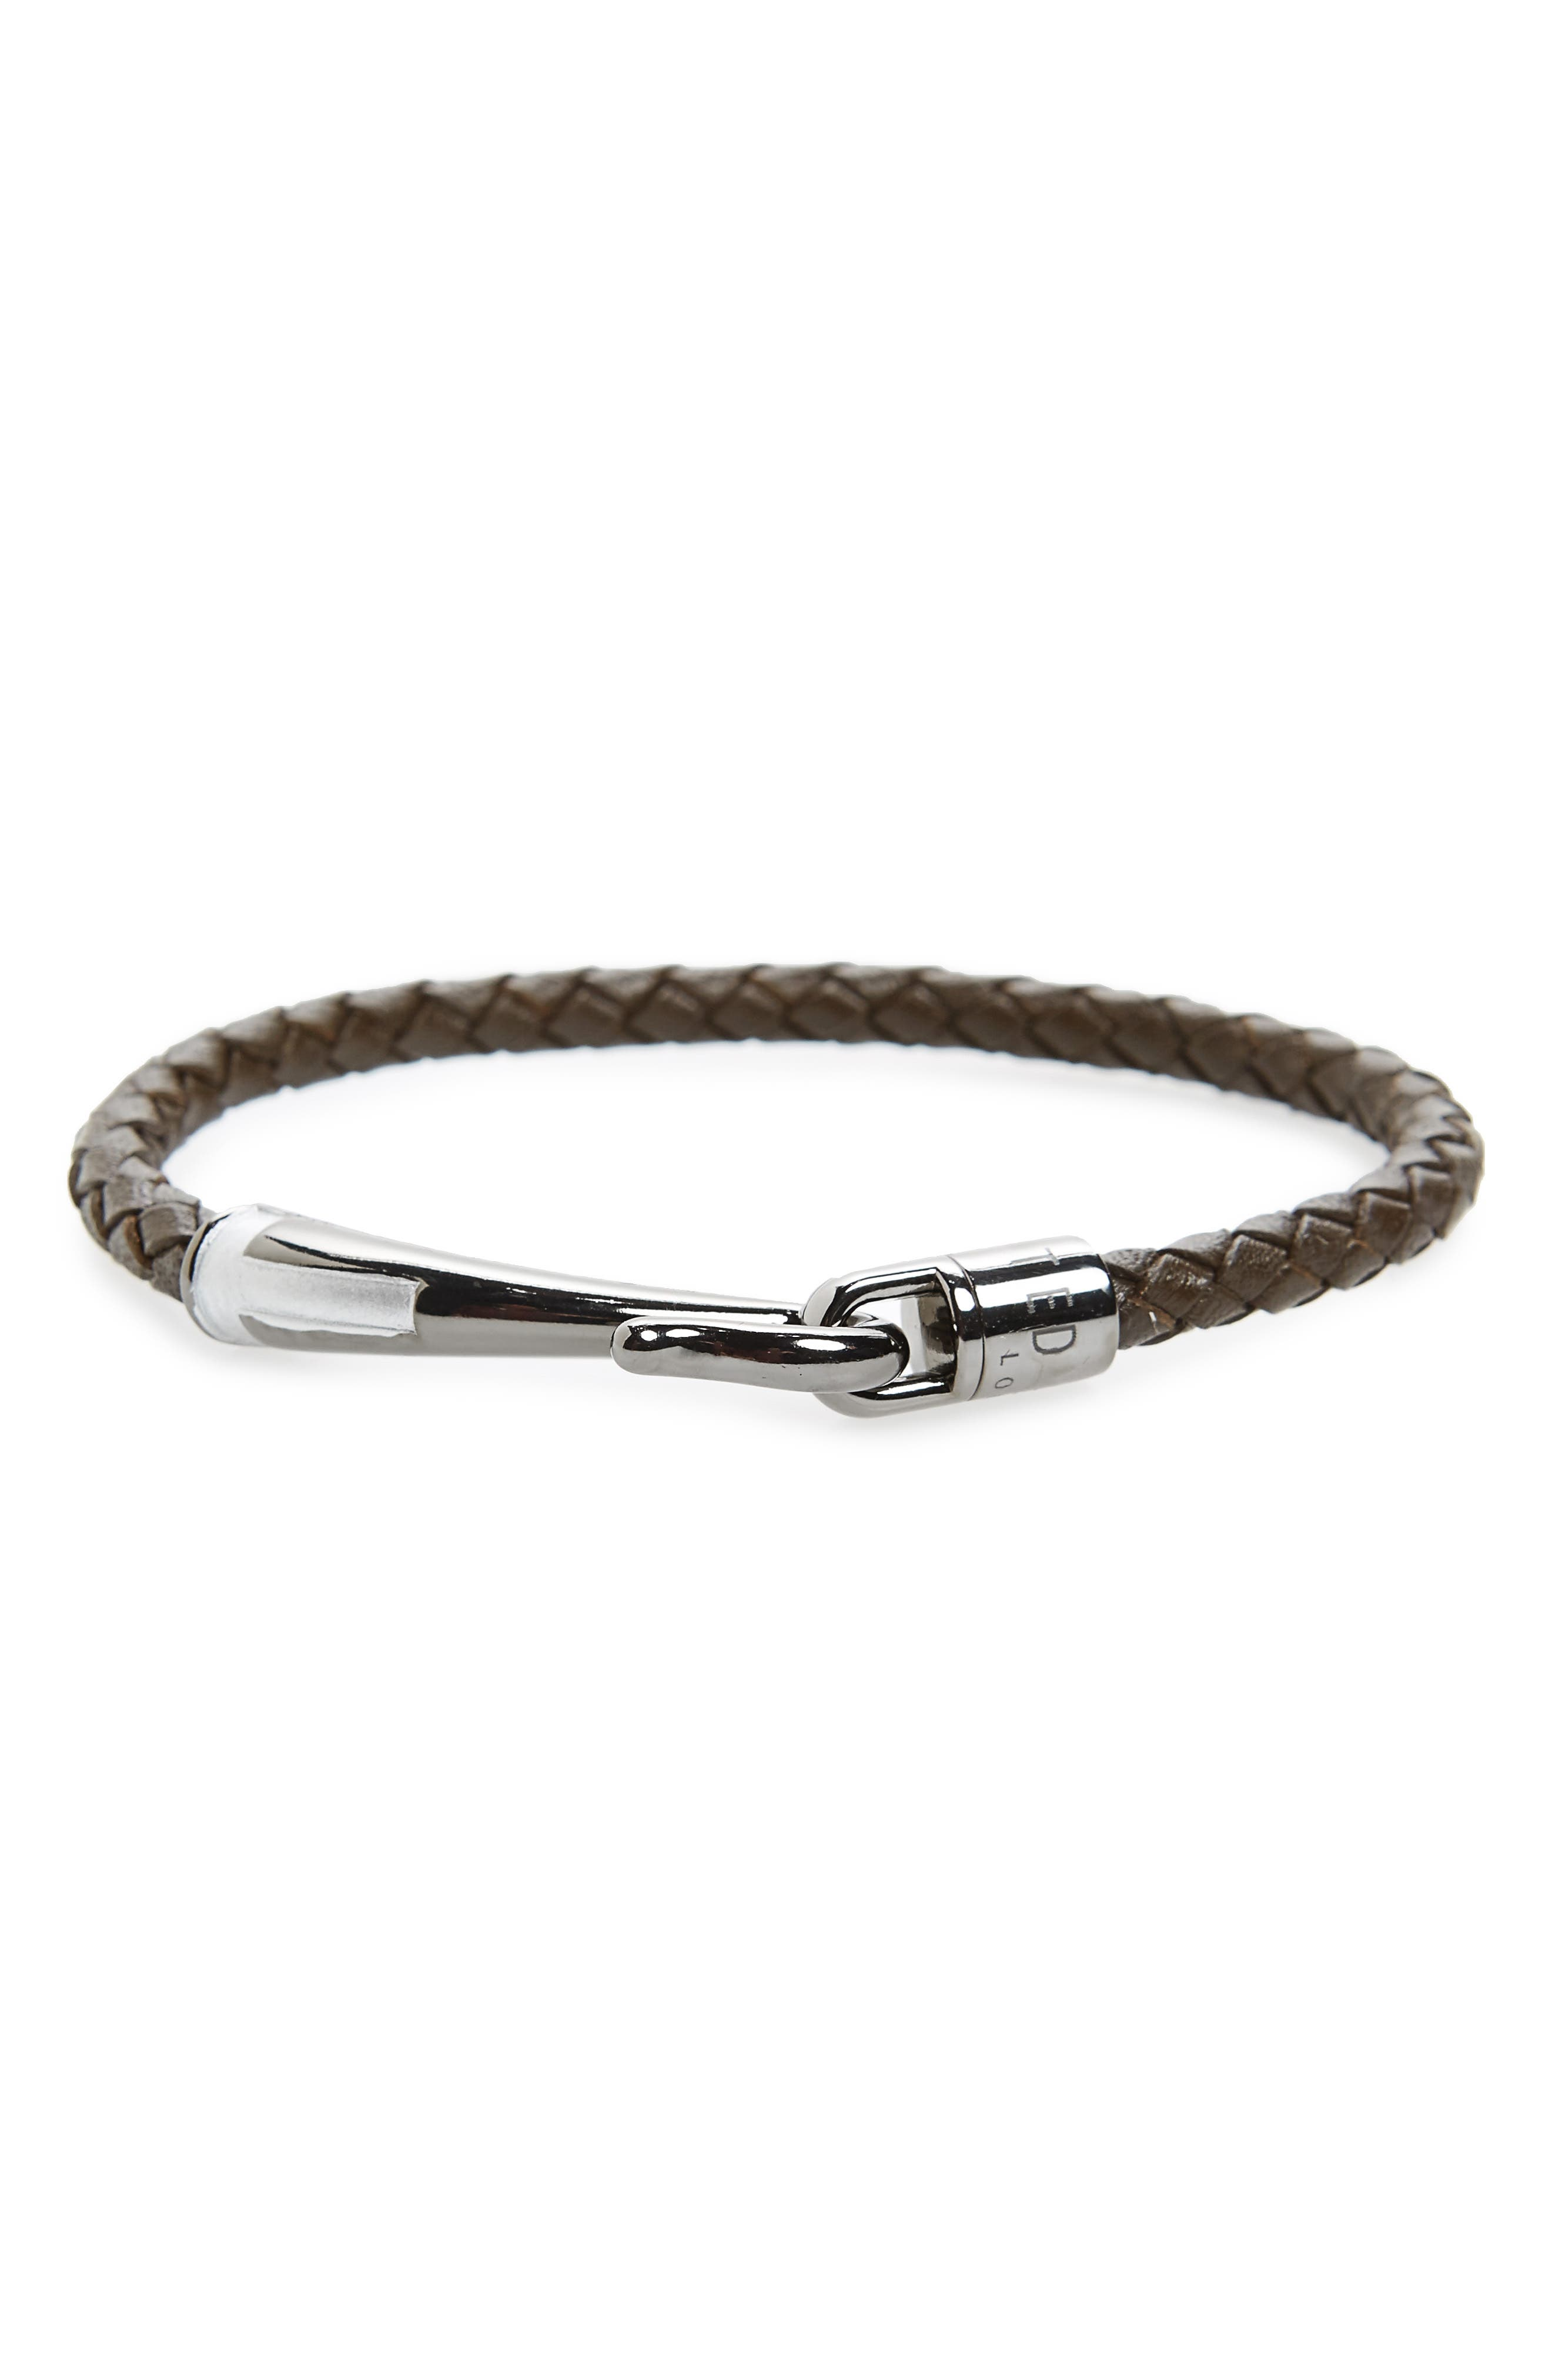 Chewer Braided Leather Bracelet,                             Main thumbnail 1, color,                             Chocolate